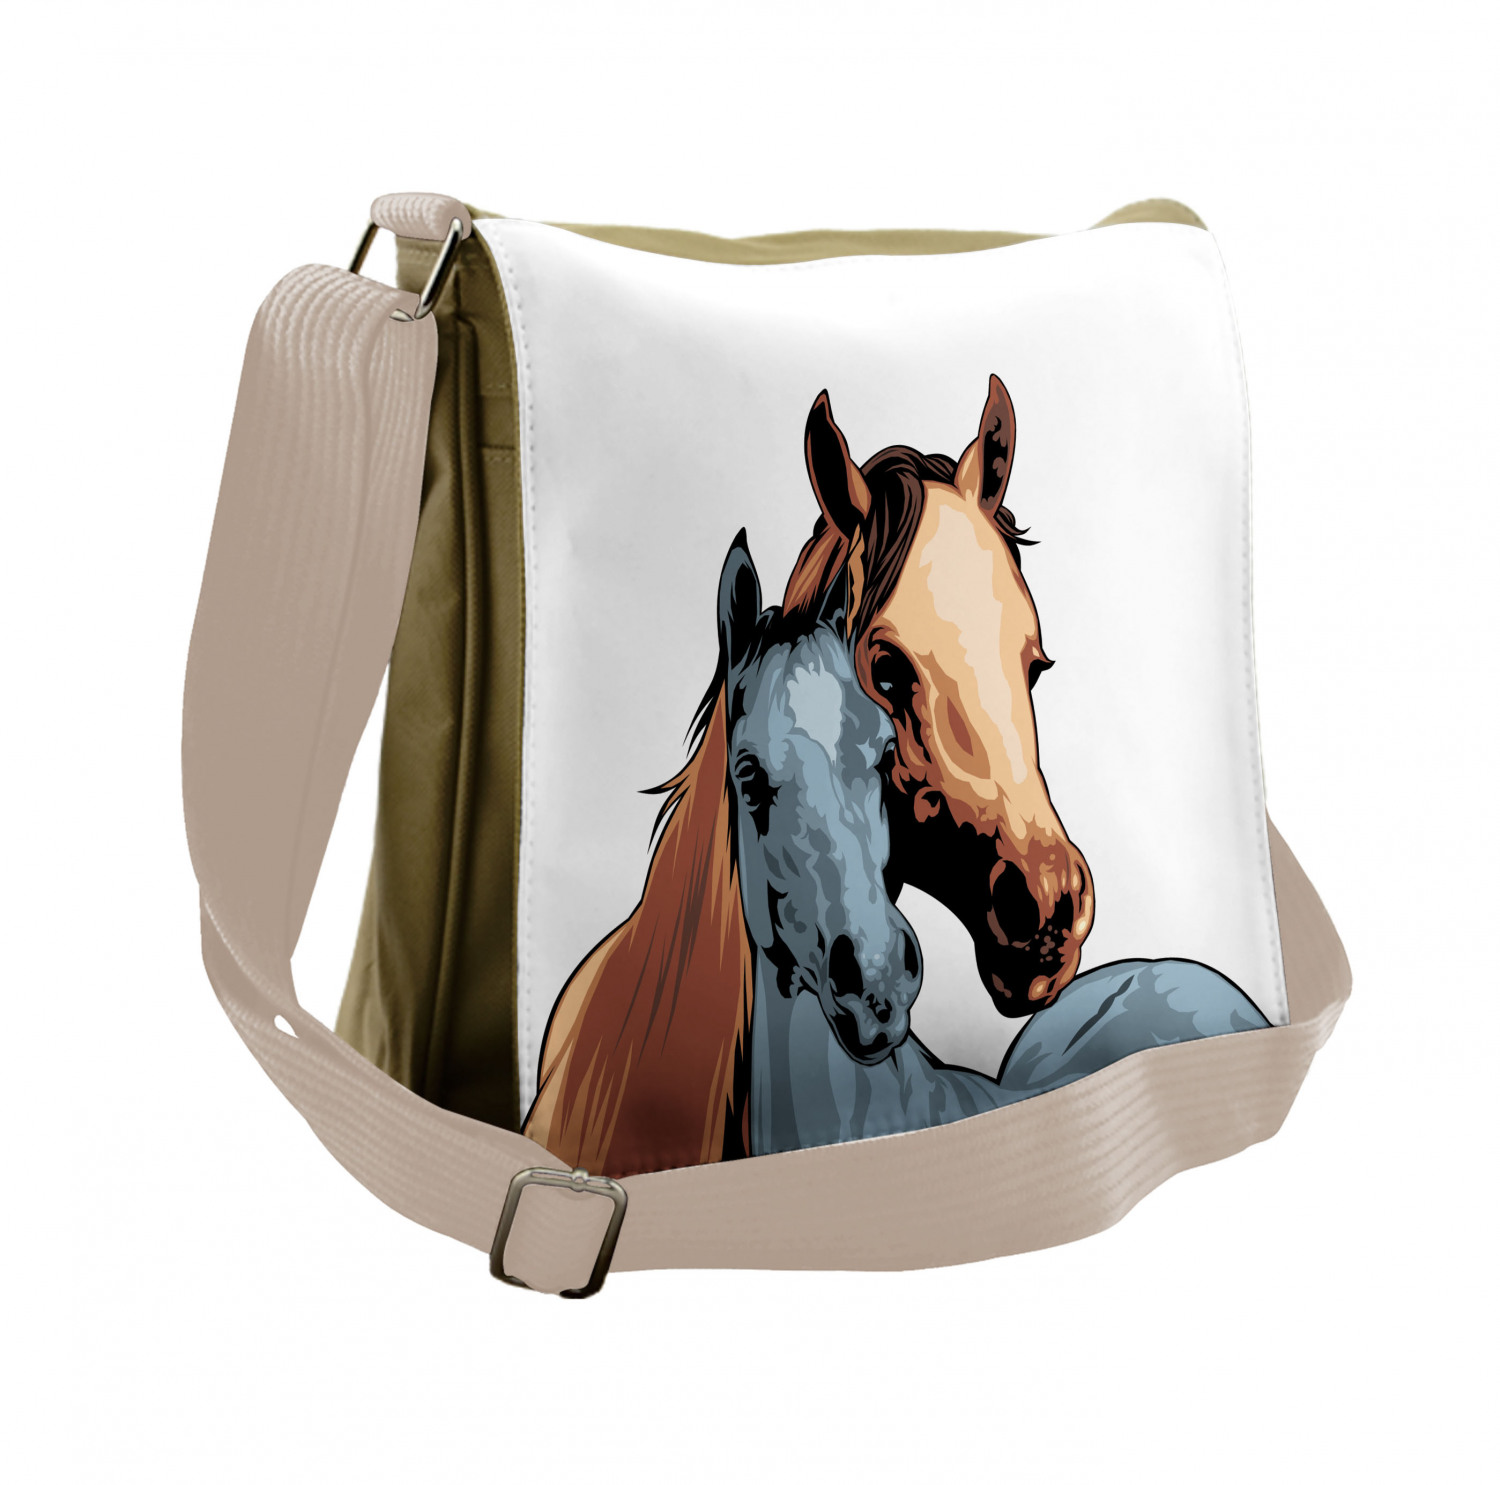 Large Weekender Carry-on Equine Themed Animals Ambesonne Horse Gym Bag